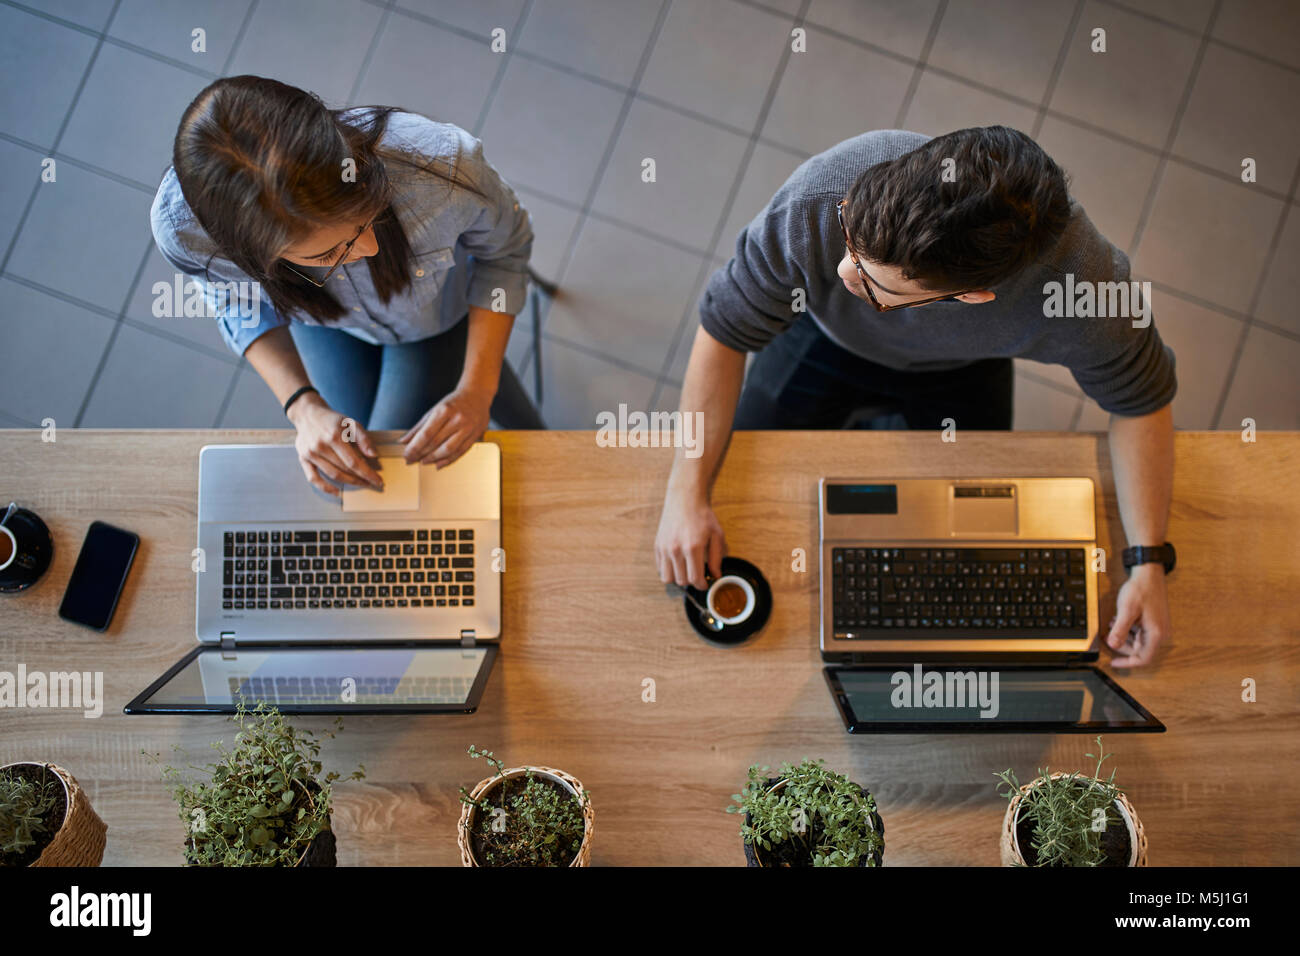 Top view of young woman and man in a cafe with laptops discussing - Stock Image